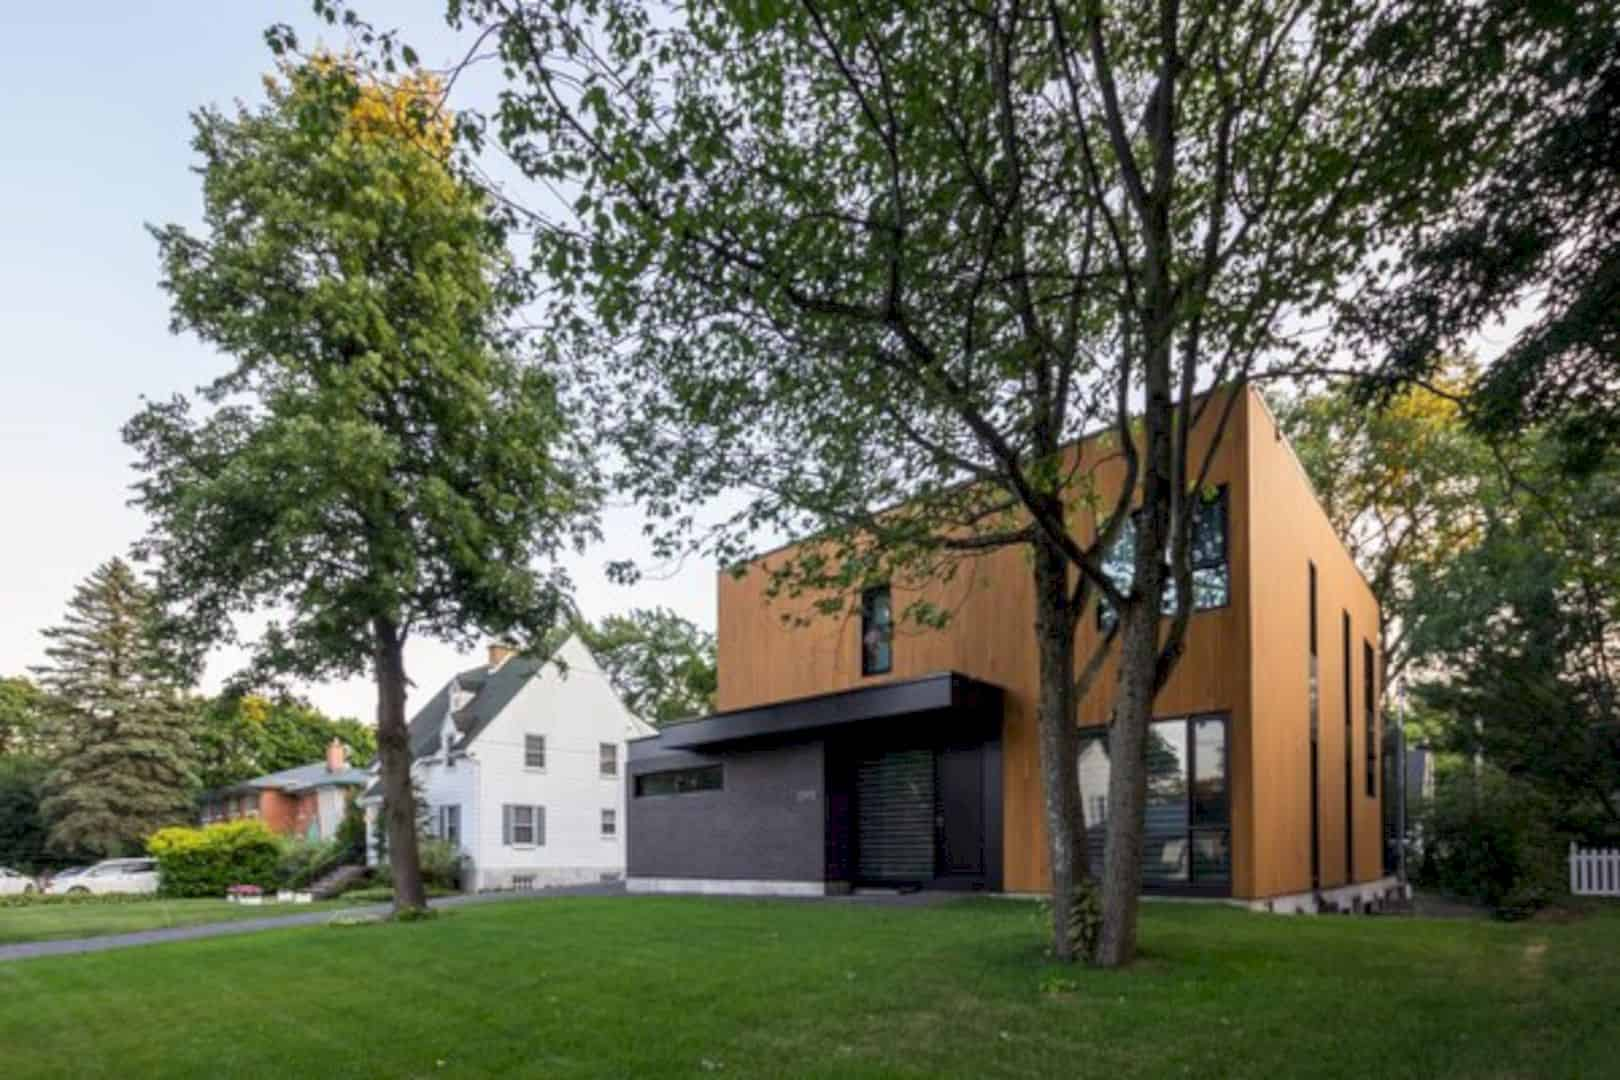 Oak Residence A Modern And Minimalist Home With Natural Materials 8